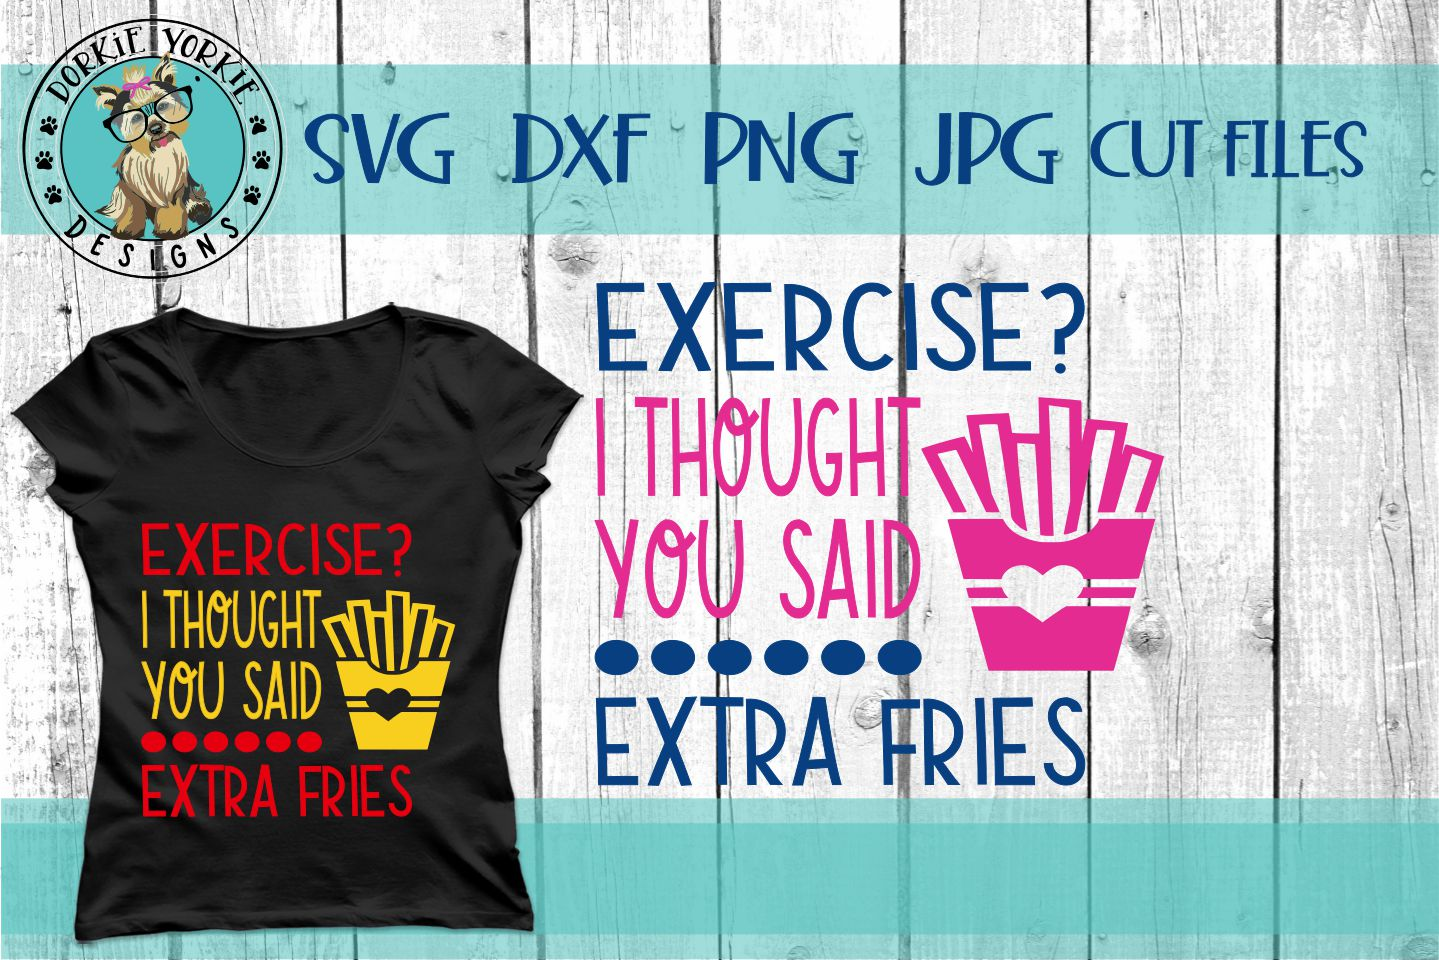 Exercise Thought You Said Extra Fries - SVG cut file example image 3